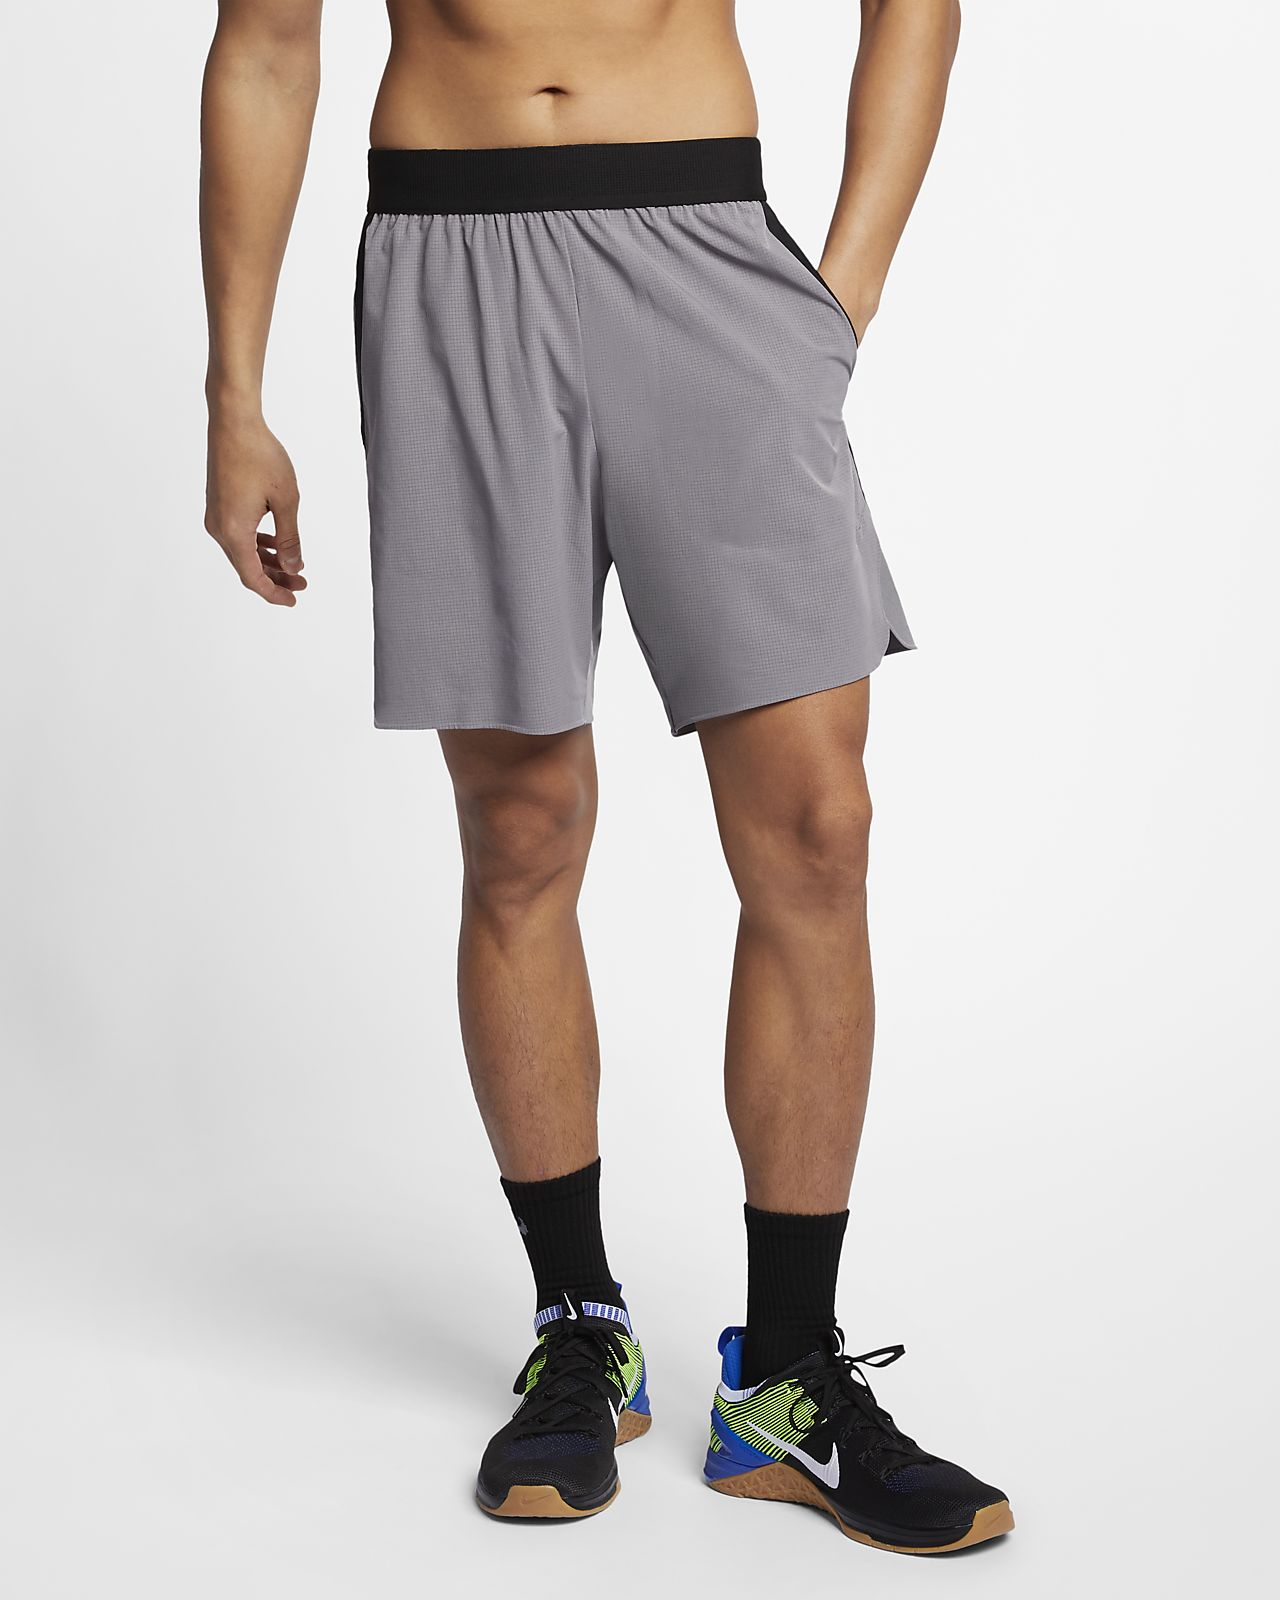 Nike Flex Tech Pack Herren-Trainingsshorts